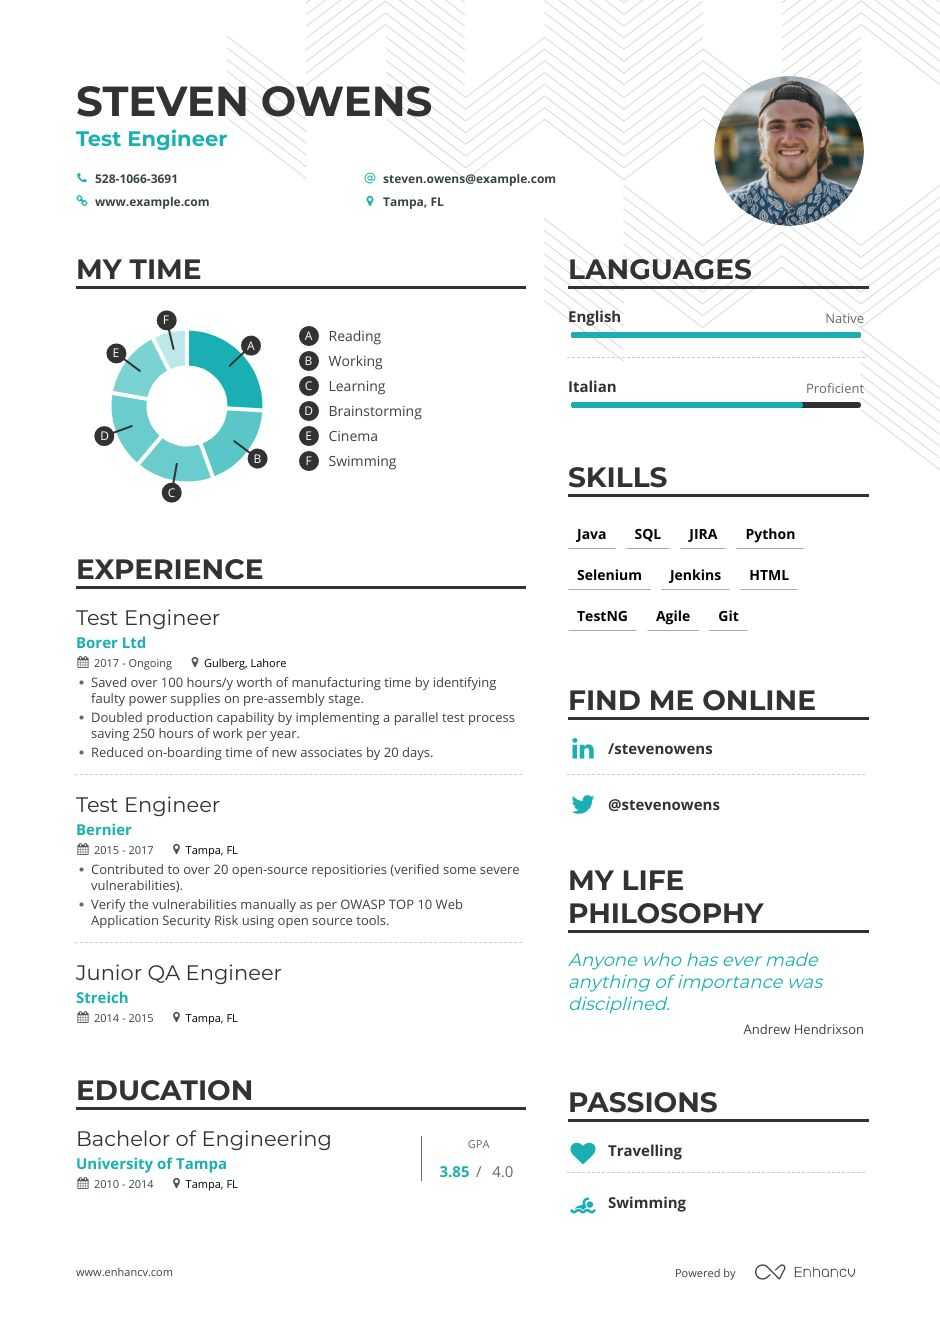 top test engineer resume examples expert tips enhancv software objective for first job Resume Software Test Engineer Resume